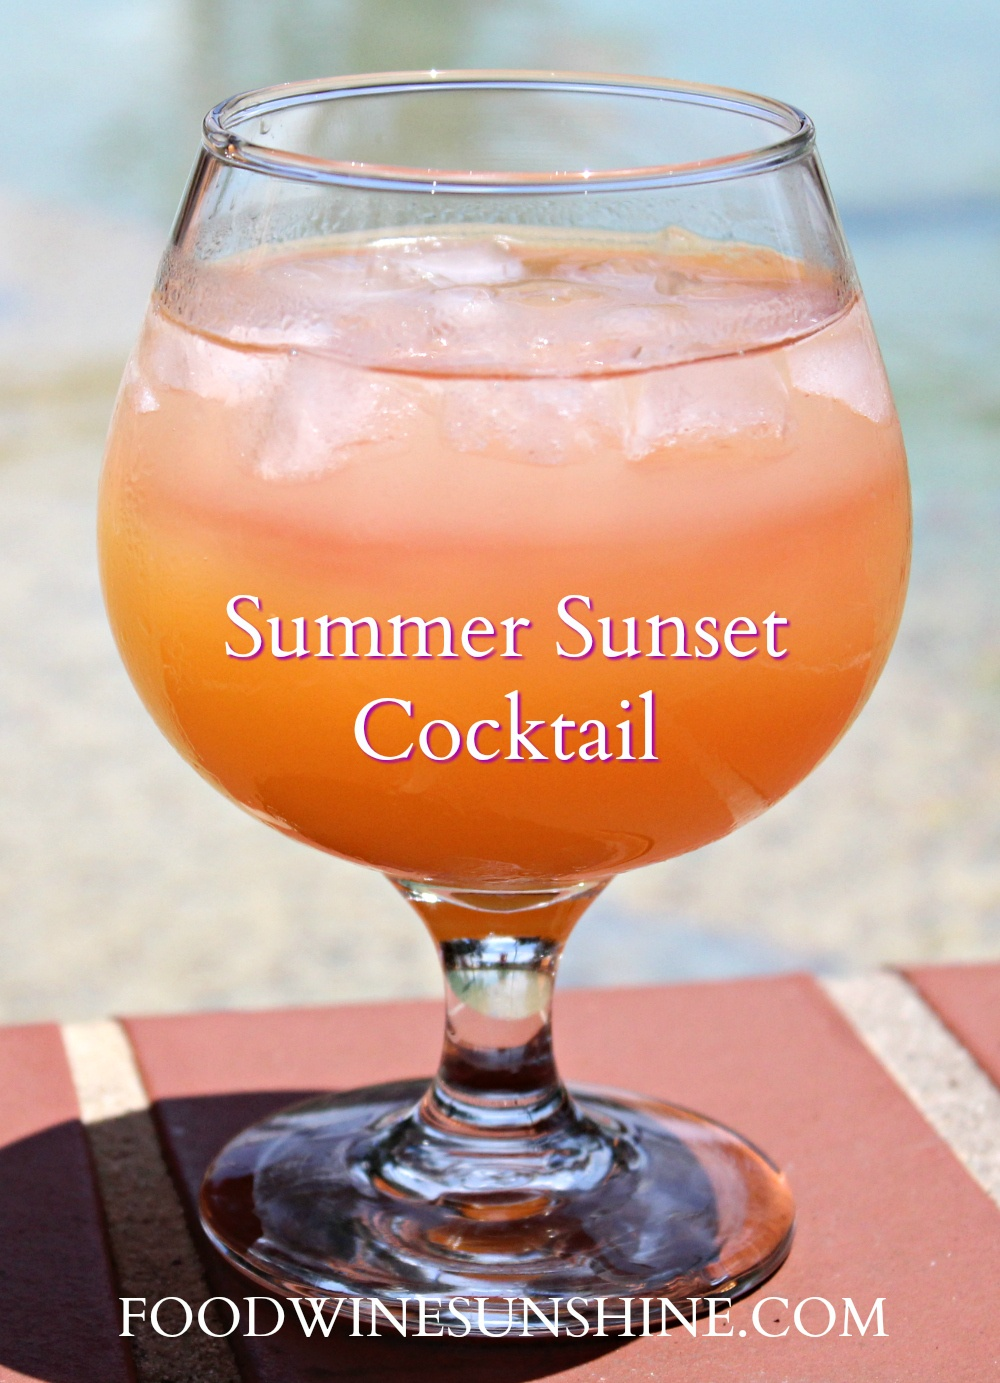 Tasty Summer Sunset Cocktail